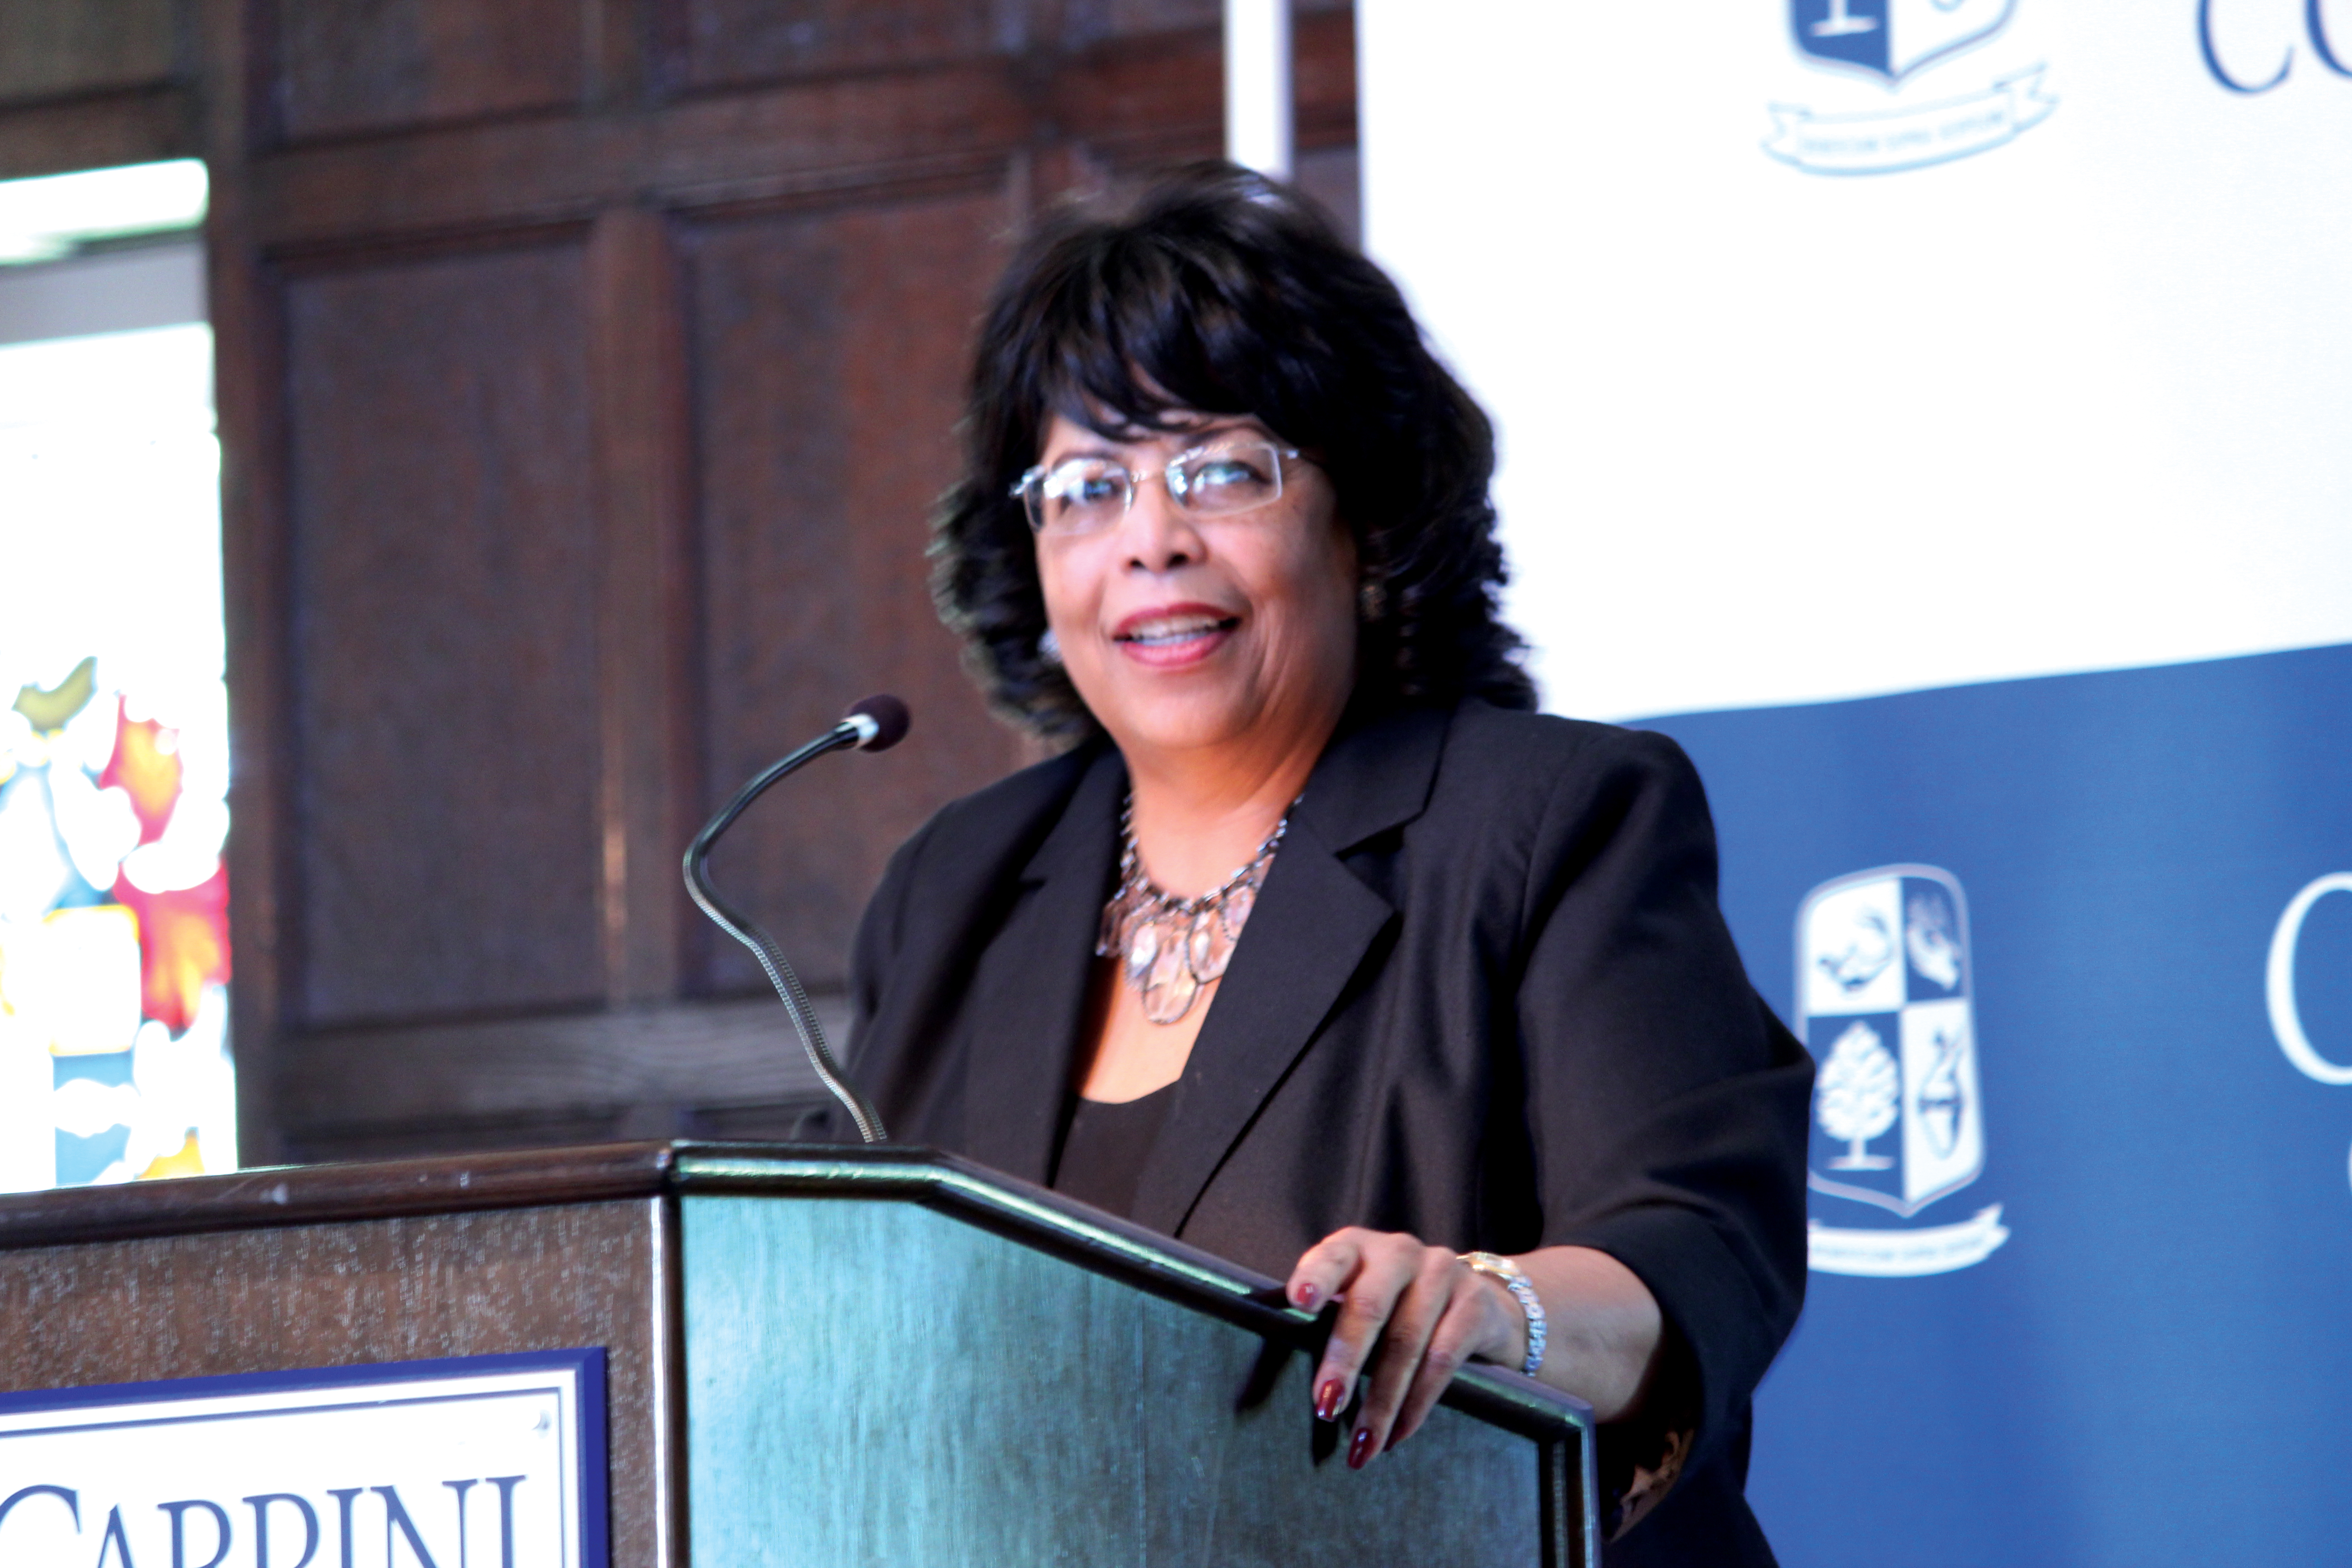 Dr. Bettye Collier-Thomas speaks to the crowd gathered in the Mansion for her speech to the college community on Thursday, Sept. 29.